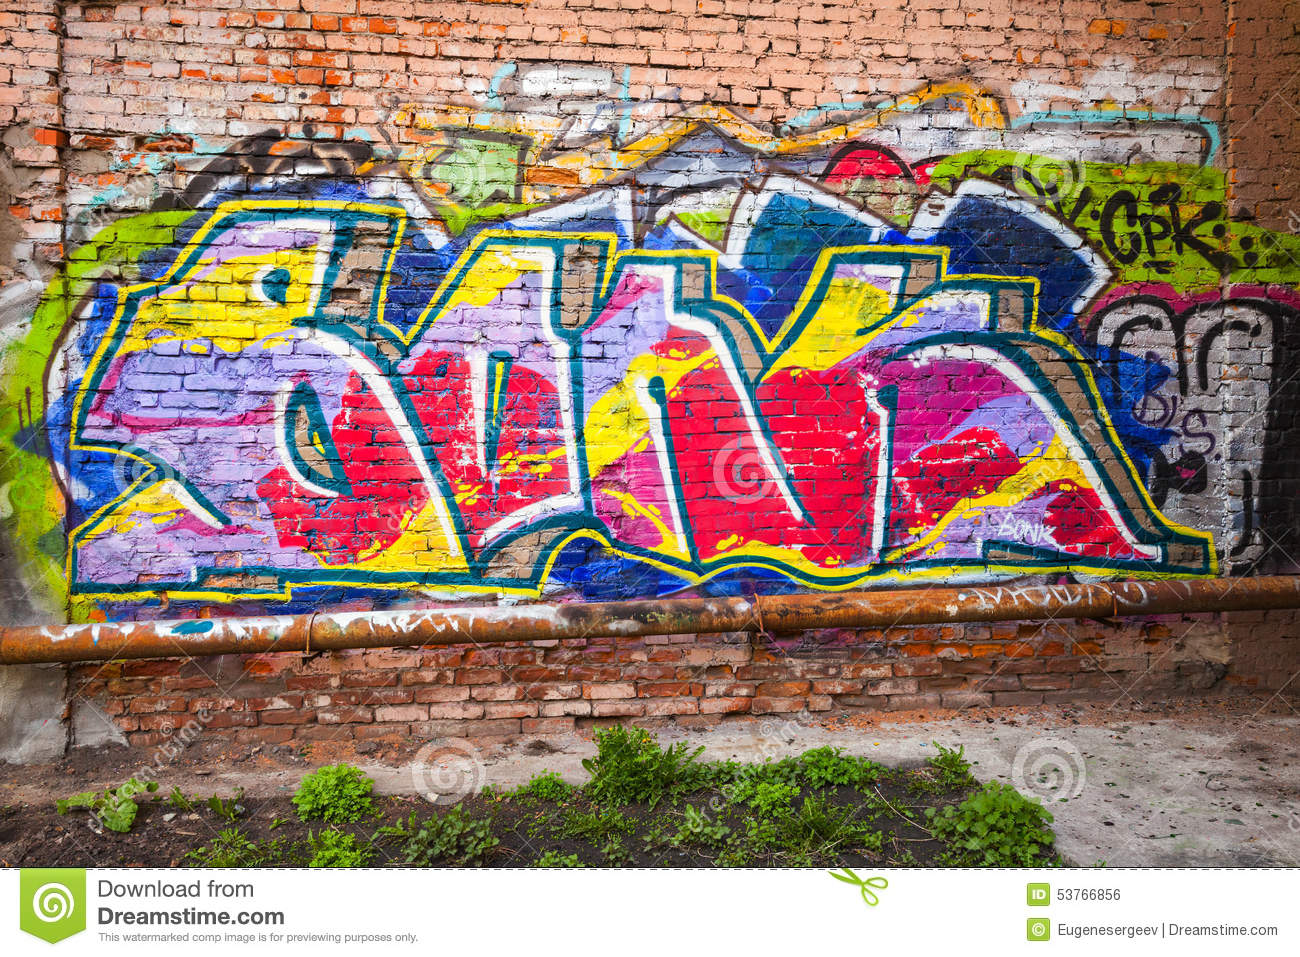 How to add graffiti text to a photo